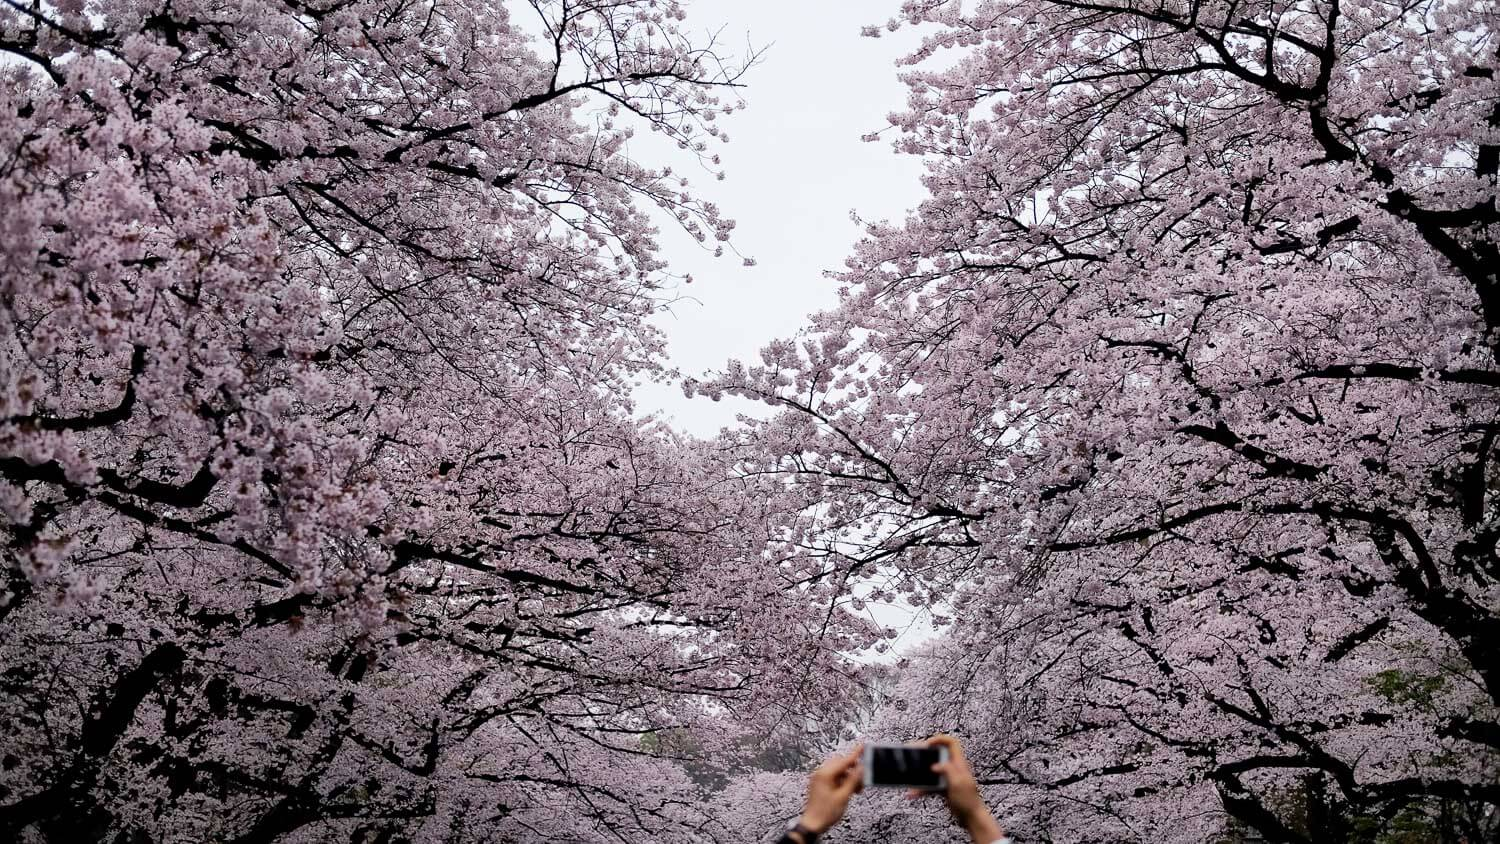 "Man takes picture of cherry blossoms in Ueno Park, Tokyo. Travel photography and guide by © Natasha Lequepeys for ""And Then I Met Yoko"". #japan #japanitinerary #tokyo #osaka #travelblog #travelphotography #landscapephotography #travelitinerary #fujifilm #kyoto #nara #oaska #travelguide #asia #foodphotography #japantravel #japanfood #ryokan #cherryblossom #springtravel"